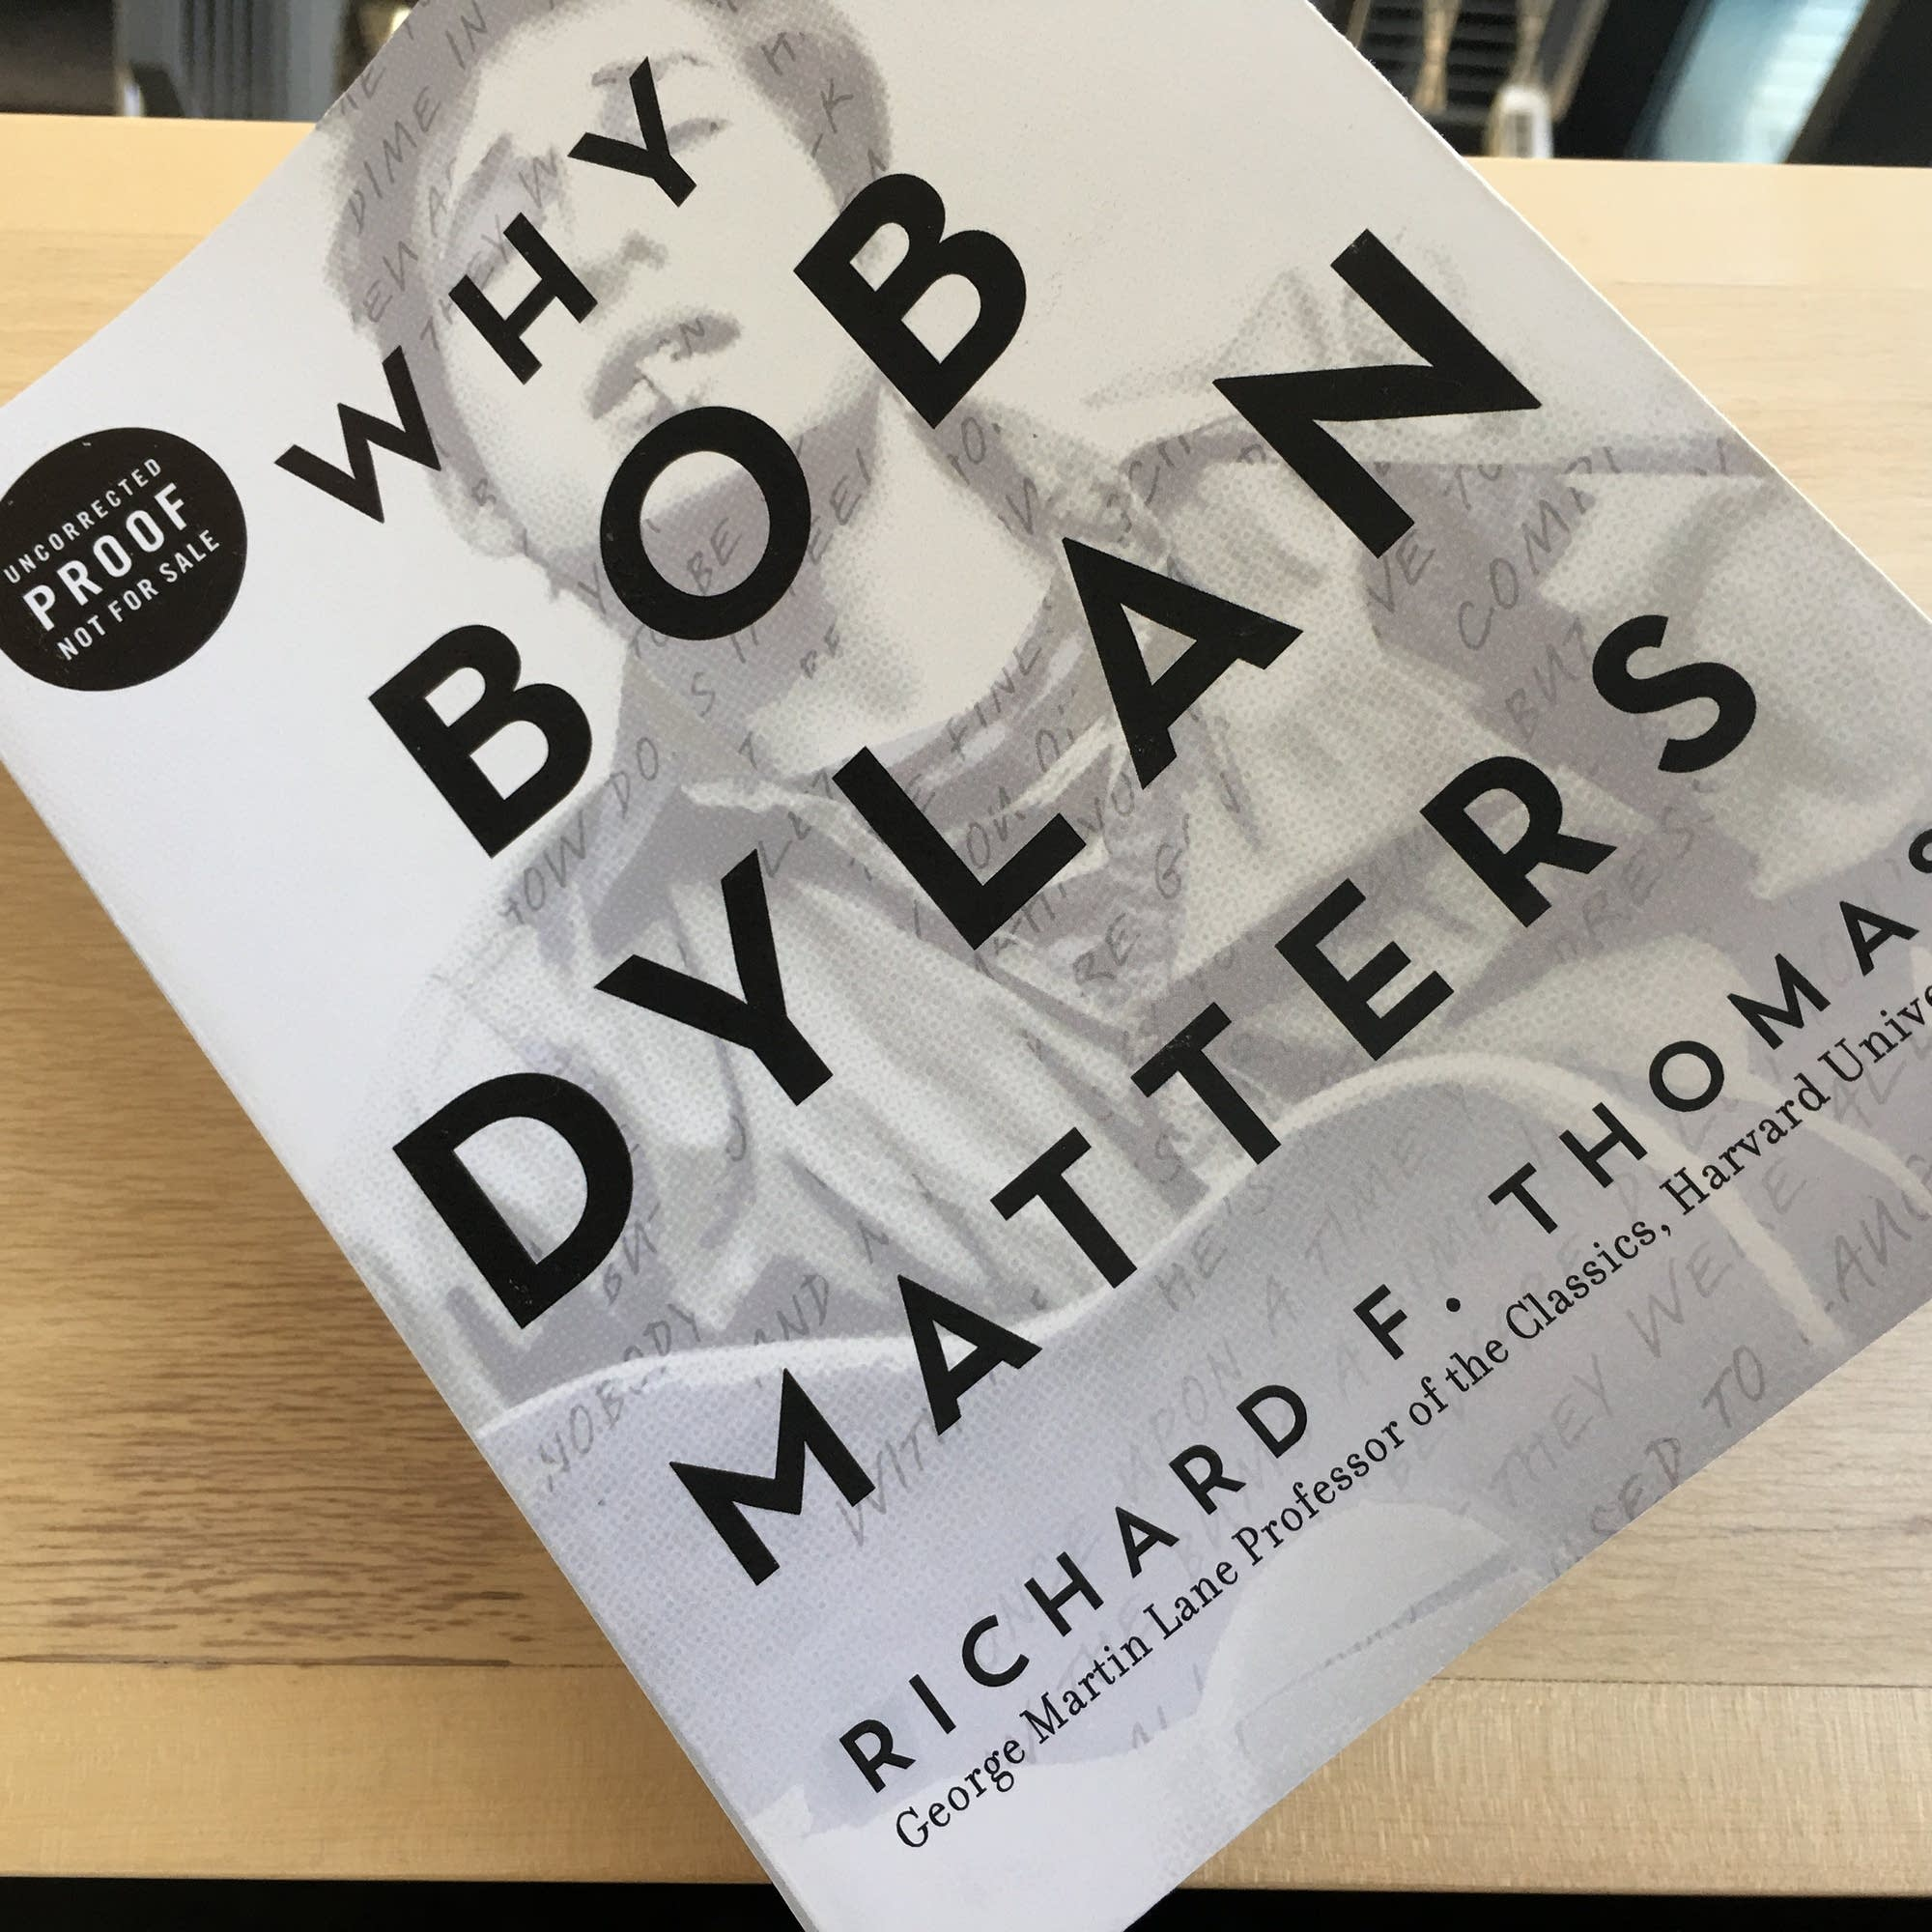 Richard F. Thomas's 'Why Bob Dylan Matters.'